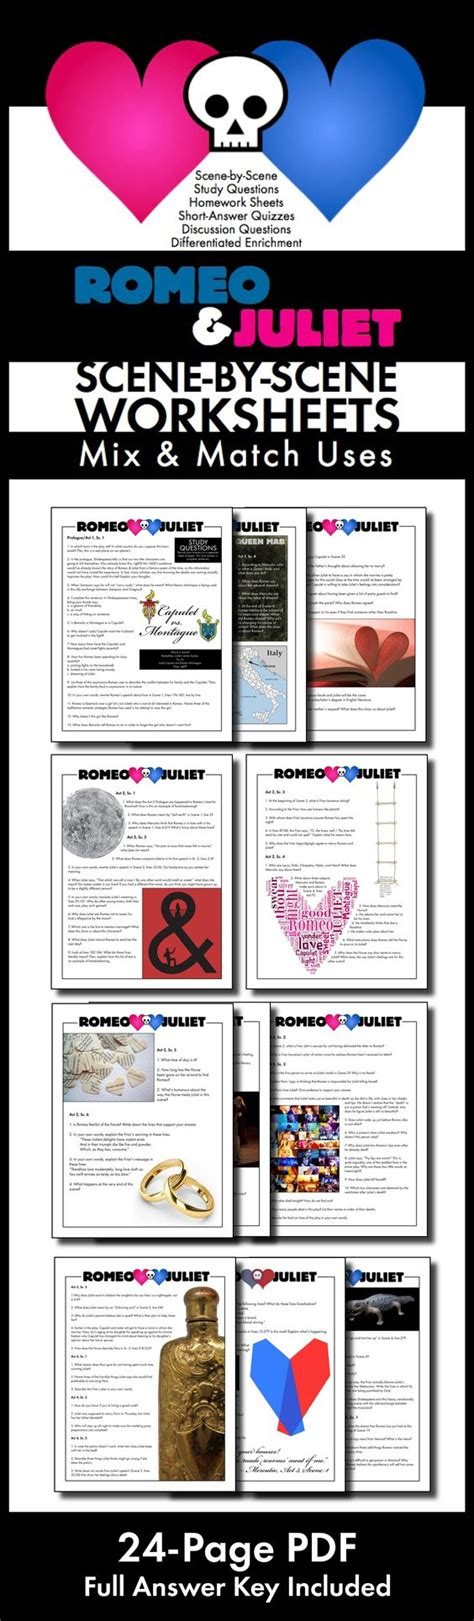 romeo and juliet themes quiz romeo juliet worksheets quizzes homework discussion for